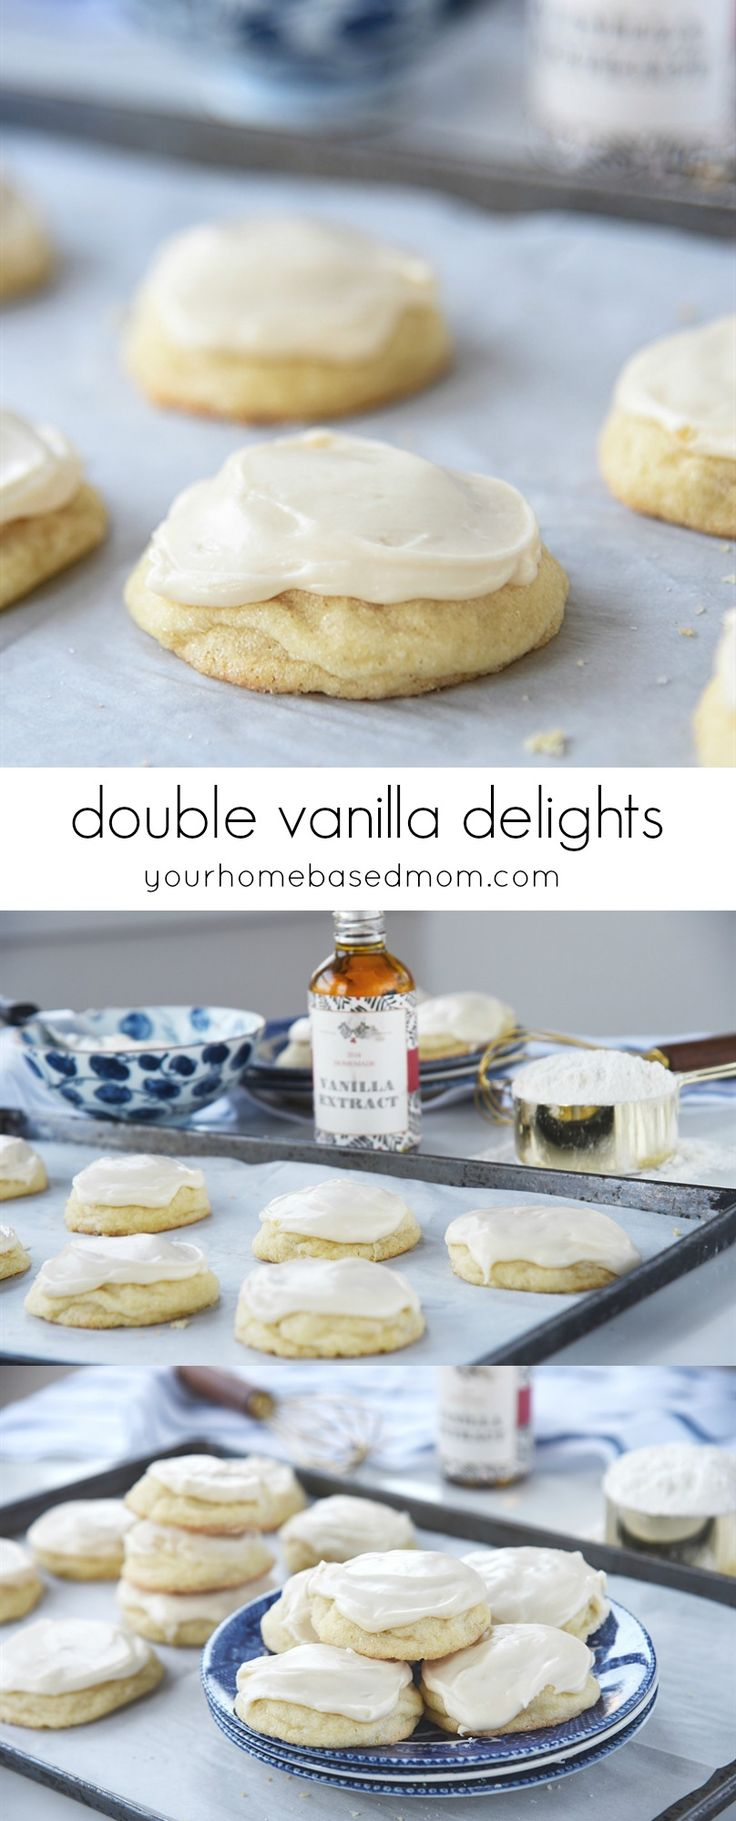 Double Vanilla Delight Sugar Cookies pack a double punch of vanilla flavor! Vanilla will quickly become your favorite flavor.